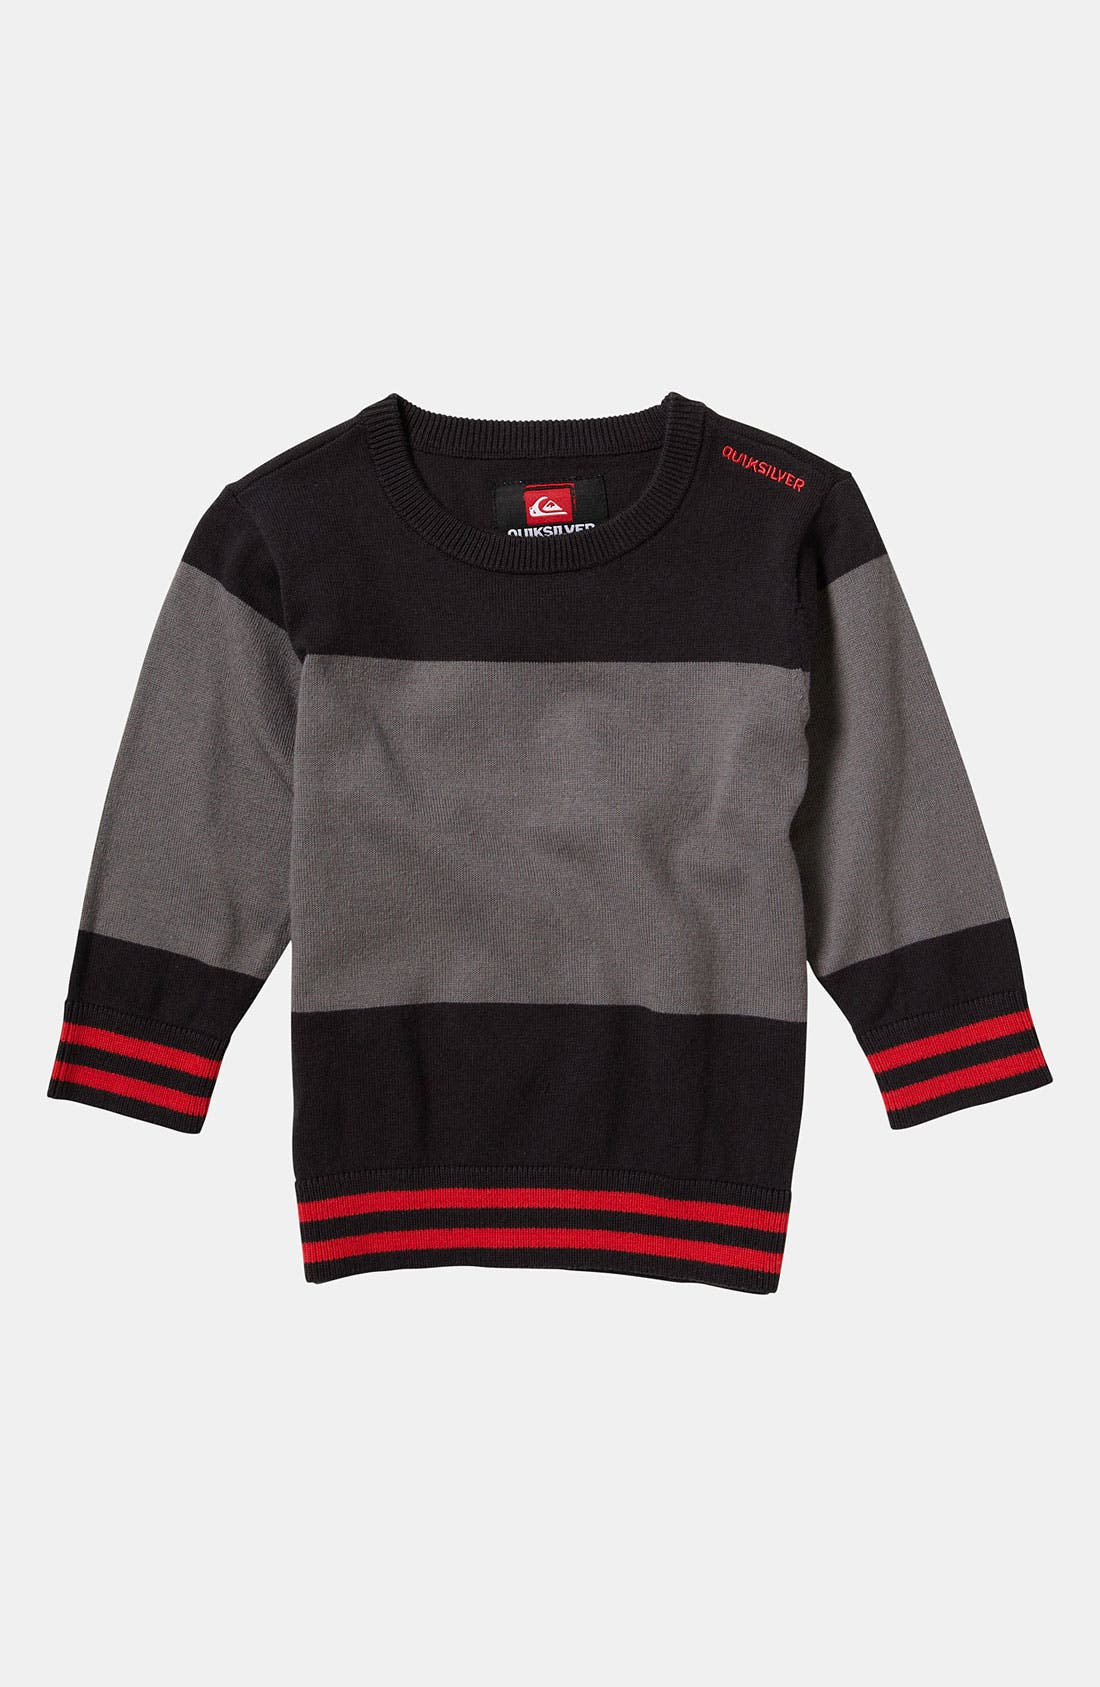 Alternate Image 1 Selected - Quiksilver 'Wild Card' Sweater (Toddler)